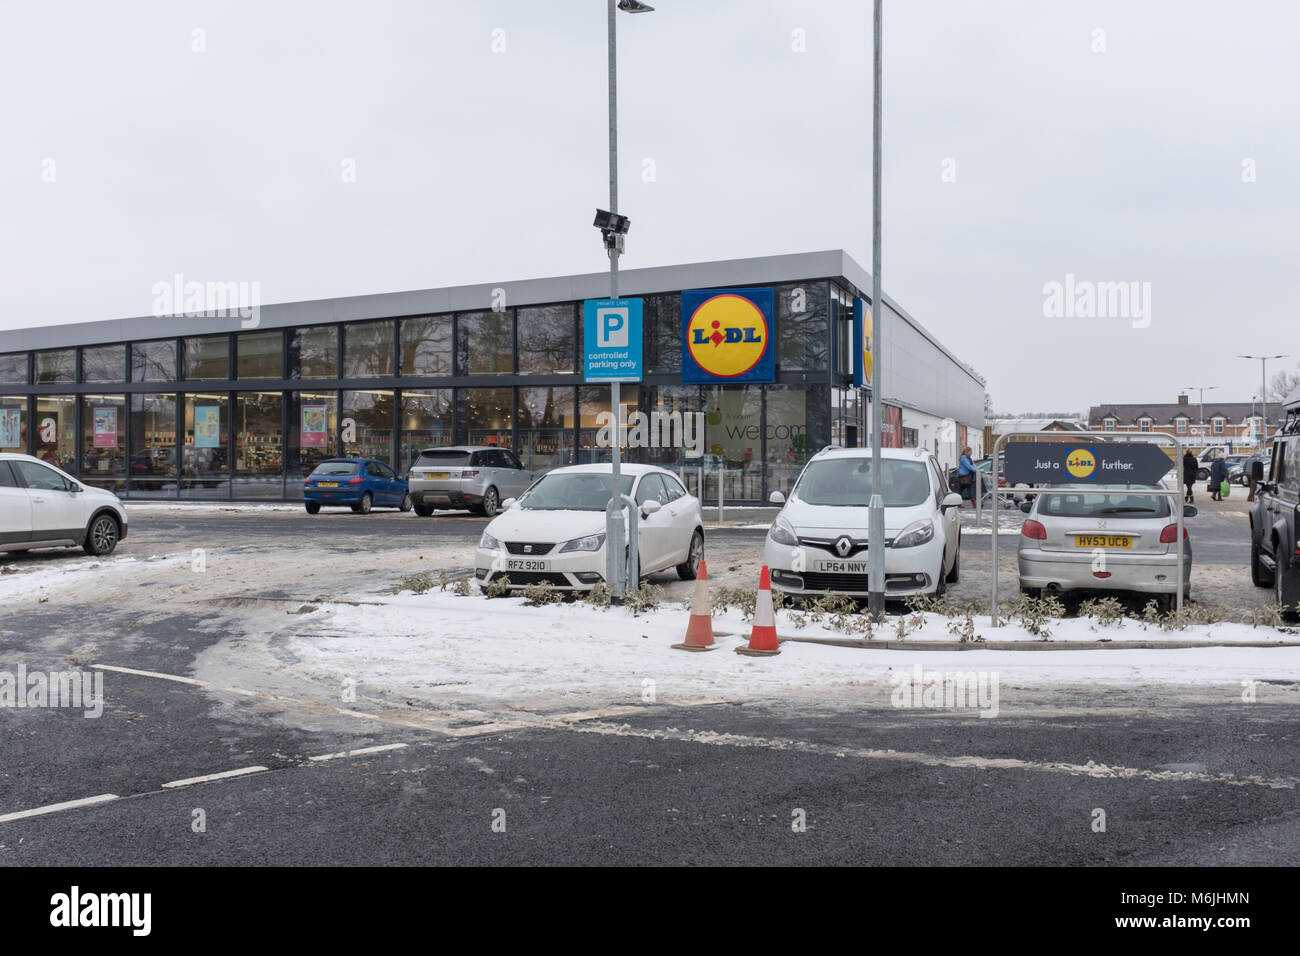 Lidl supermarket and car park winter, Oakham Rutland UK - Stock Image